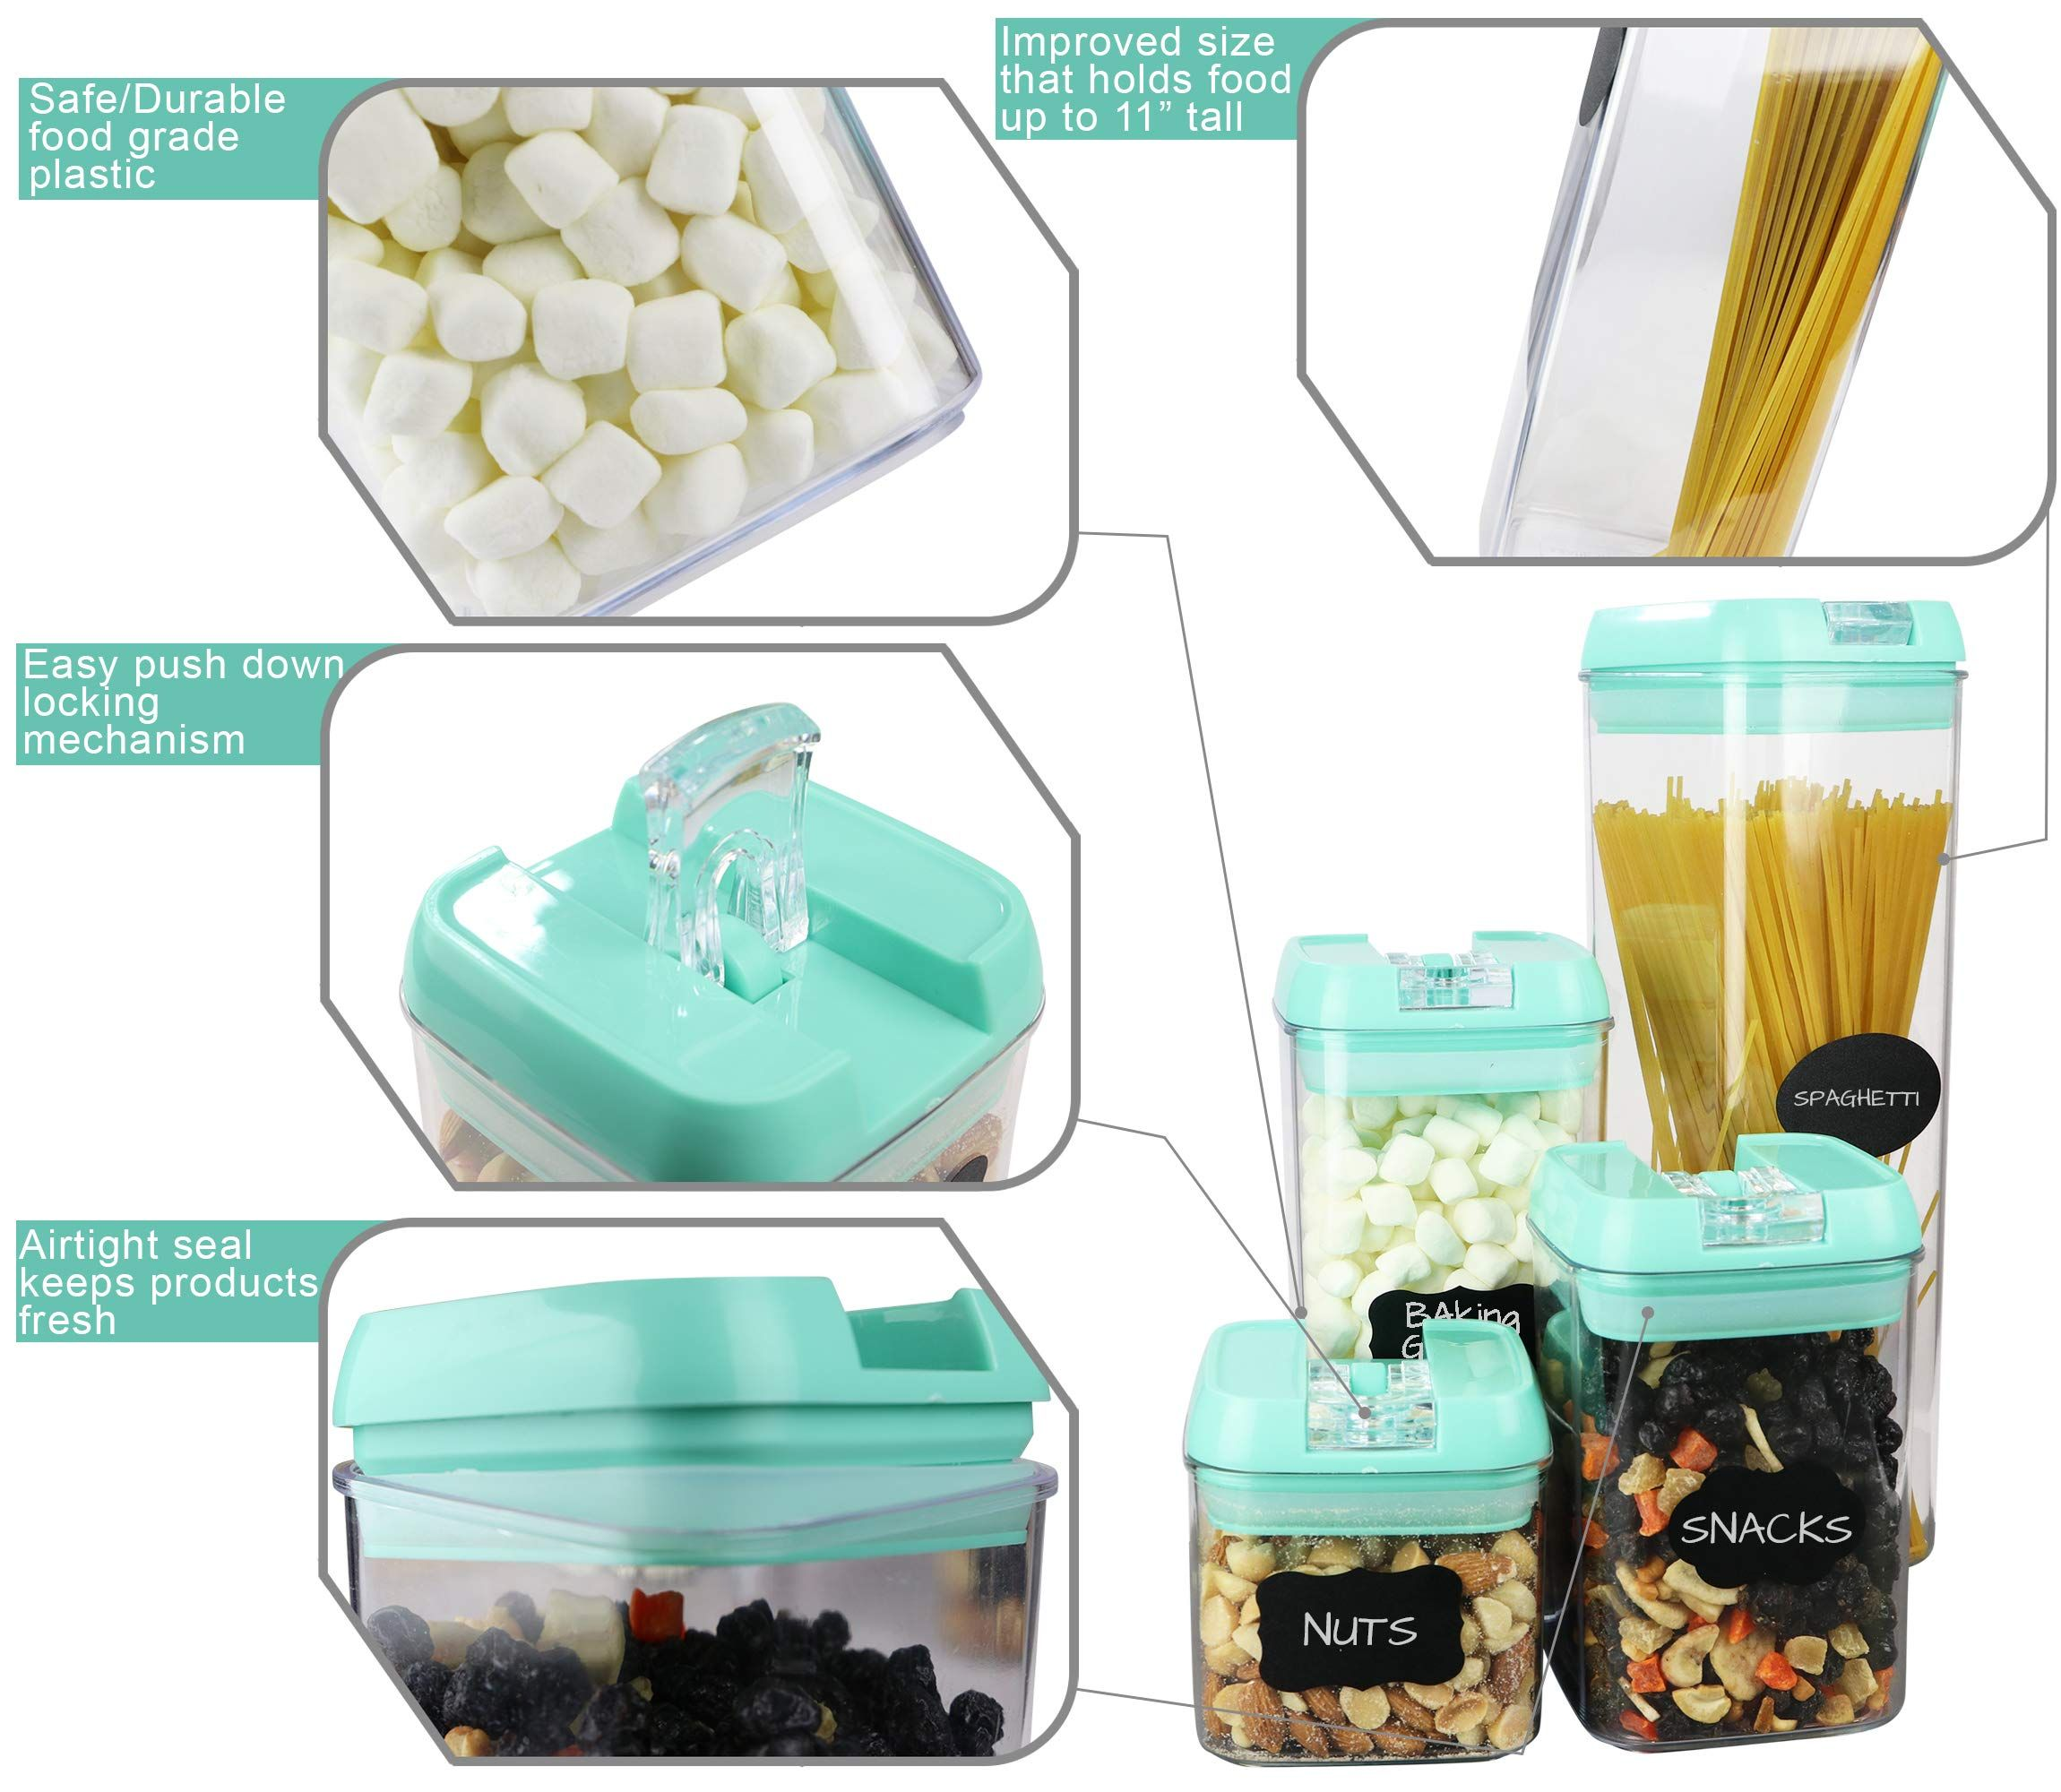 Airtight Food Storage Containers 7 Pc Set Shatterproof Plastic Food Containe Airtight Food Storage Containers Airtight Food Storage Plastic Food Containers